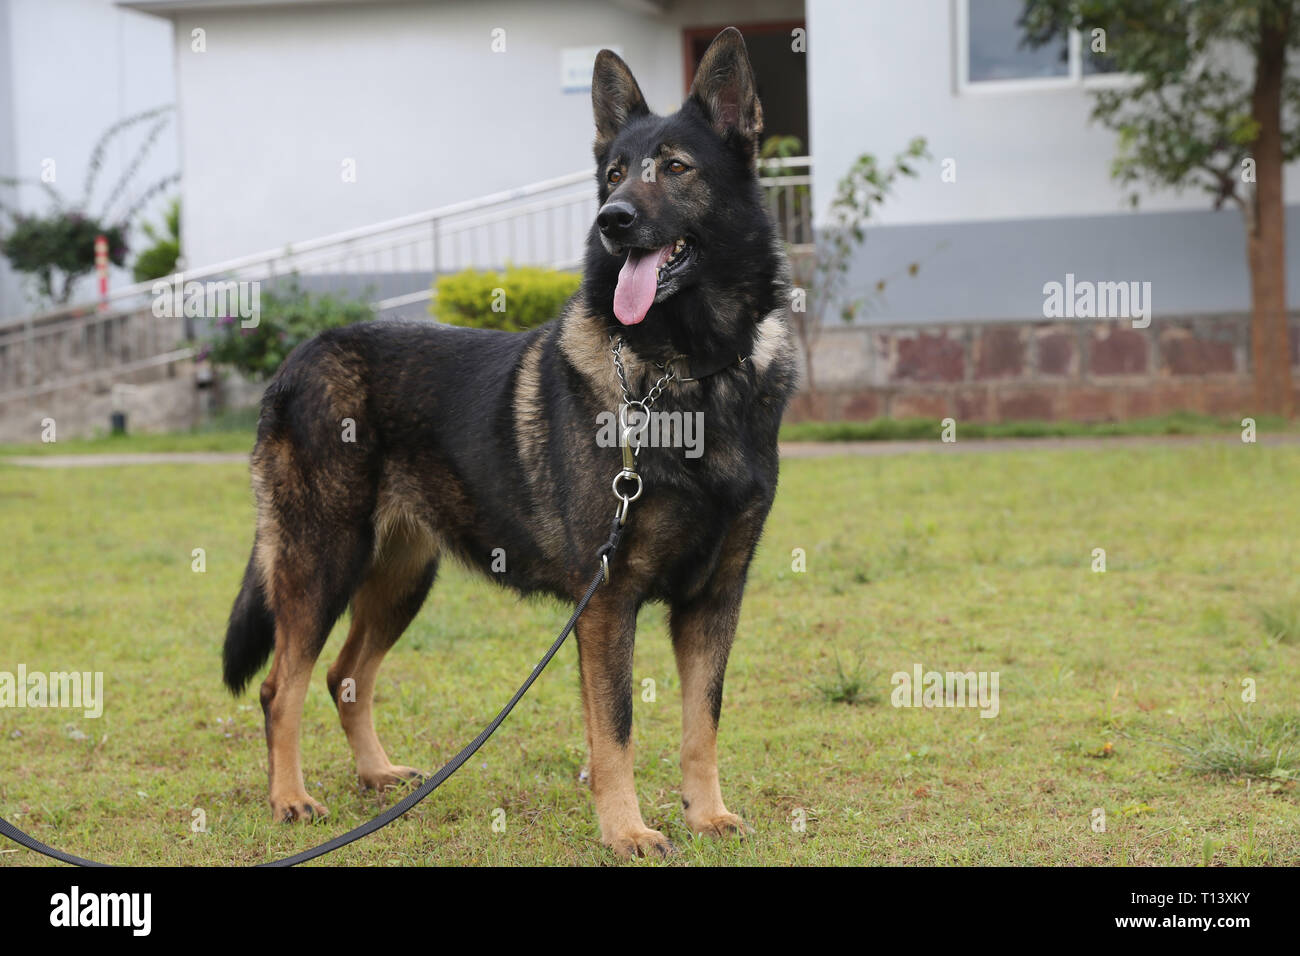 Kunming. 23rd Mar, 2019. Undated file photo shows police dog Huahuangma. Three-month-old Kunxun arrived at Kunming Police Dog Base from Beijing earlier this month to receive training. Kunxun was born in December 2018 in Beijing at a healthy condition with 540 grams in weight and 23 centimeters in length. Kunxun was cloned from a 7-year-old female police dog named Huahuangma, which is considered a great detective dog. According to a test by a institution, Kunxun's DNA is over 99.9 percent identical to that of Huahuangma. Credit: Xinhua/Alamy Live News - Stock Image